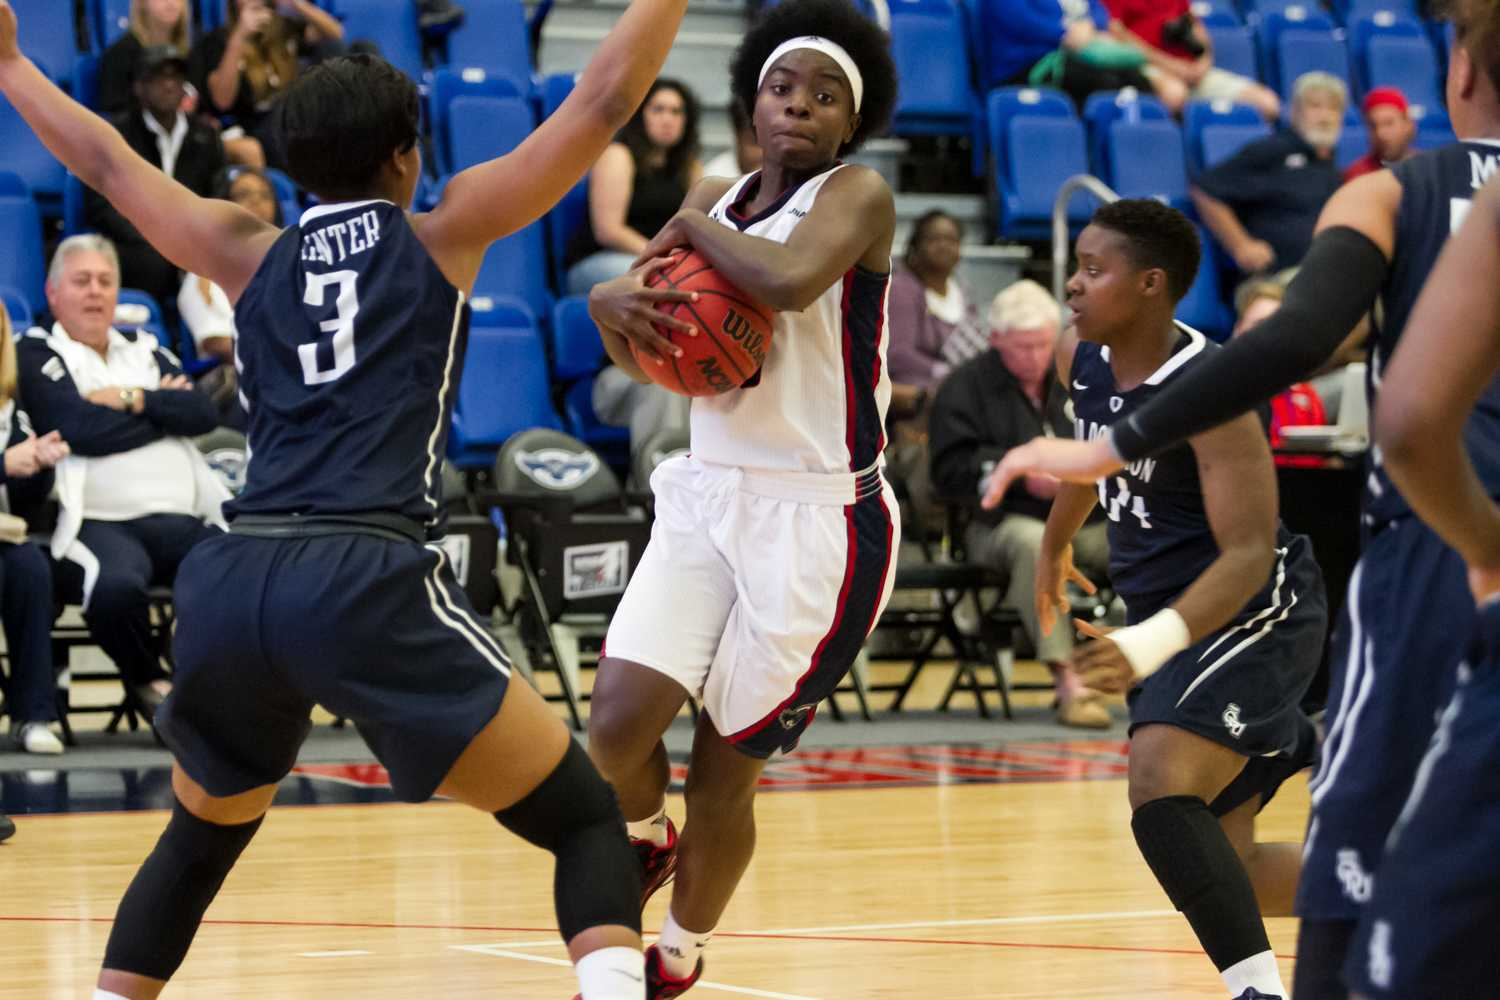 FAU guard Morgan Robinson moves towards the basket around ODU forward Chelisa Painter. The junior from Longwood, Fla. scored six points on the night.